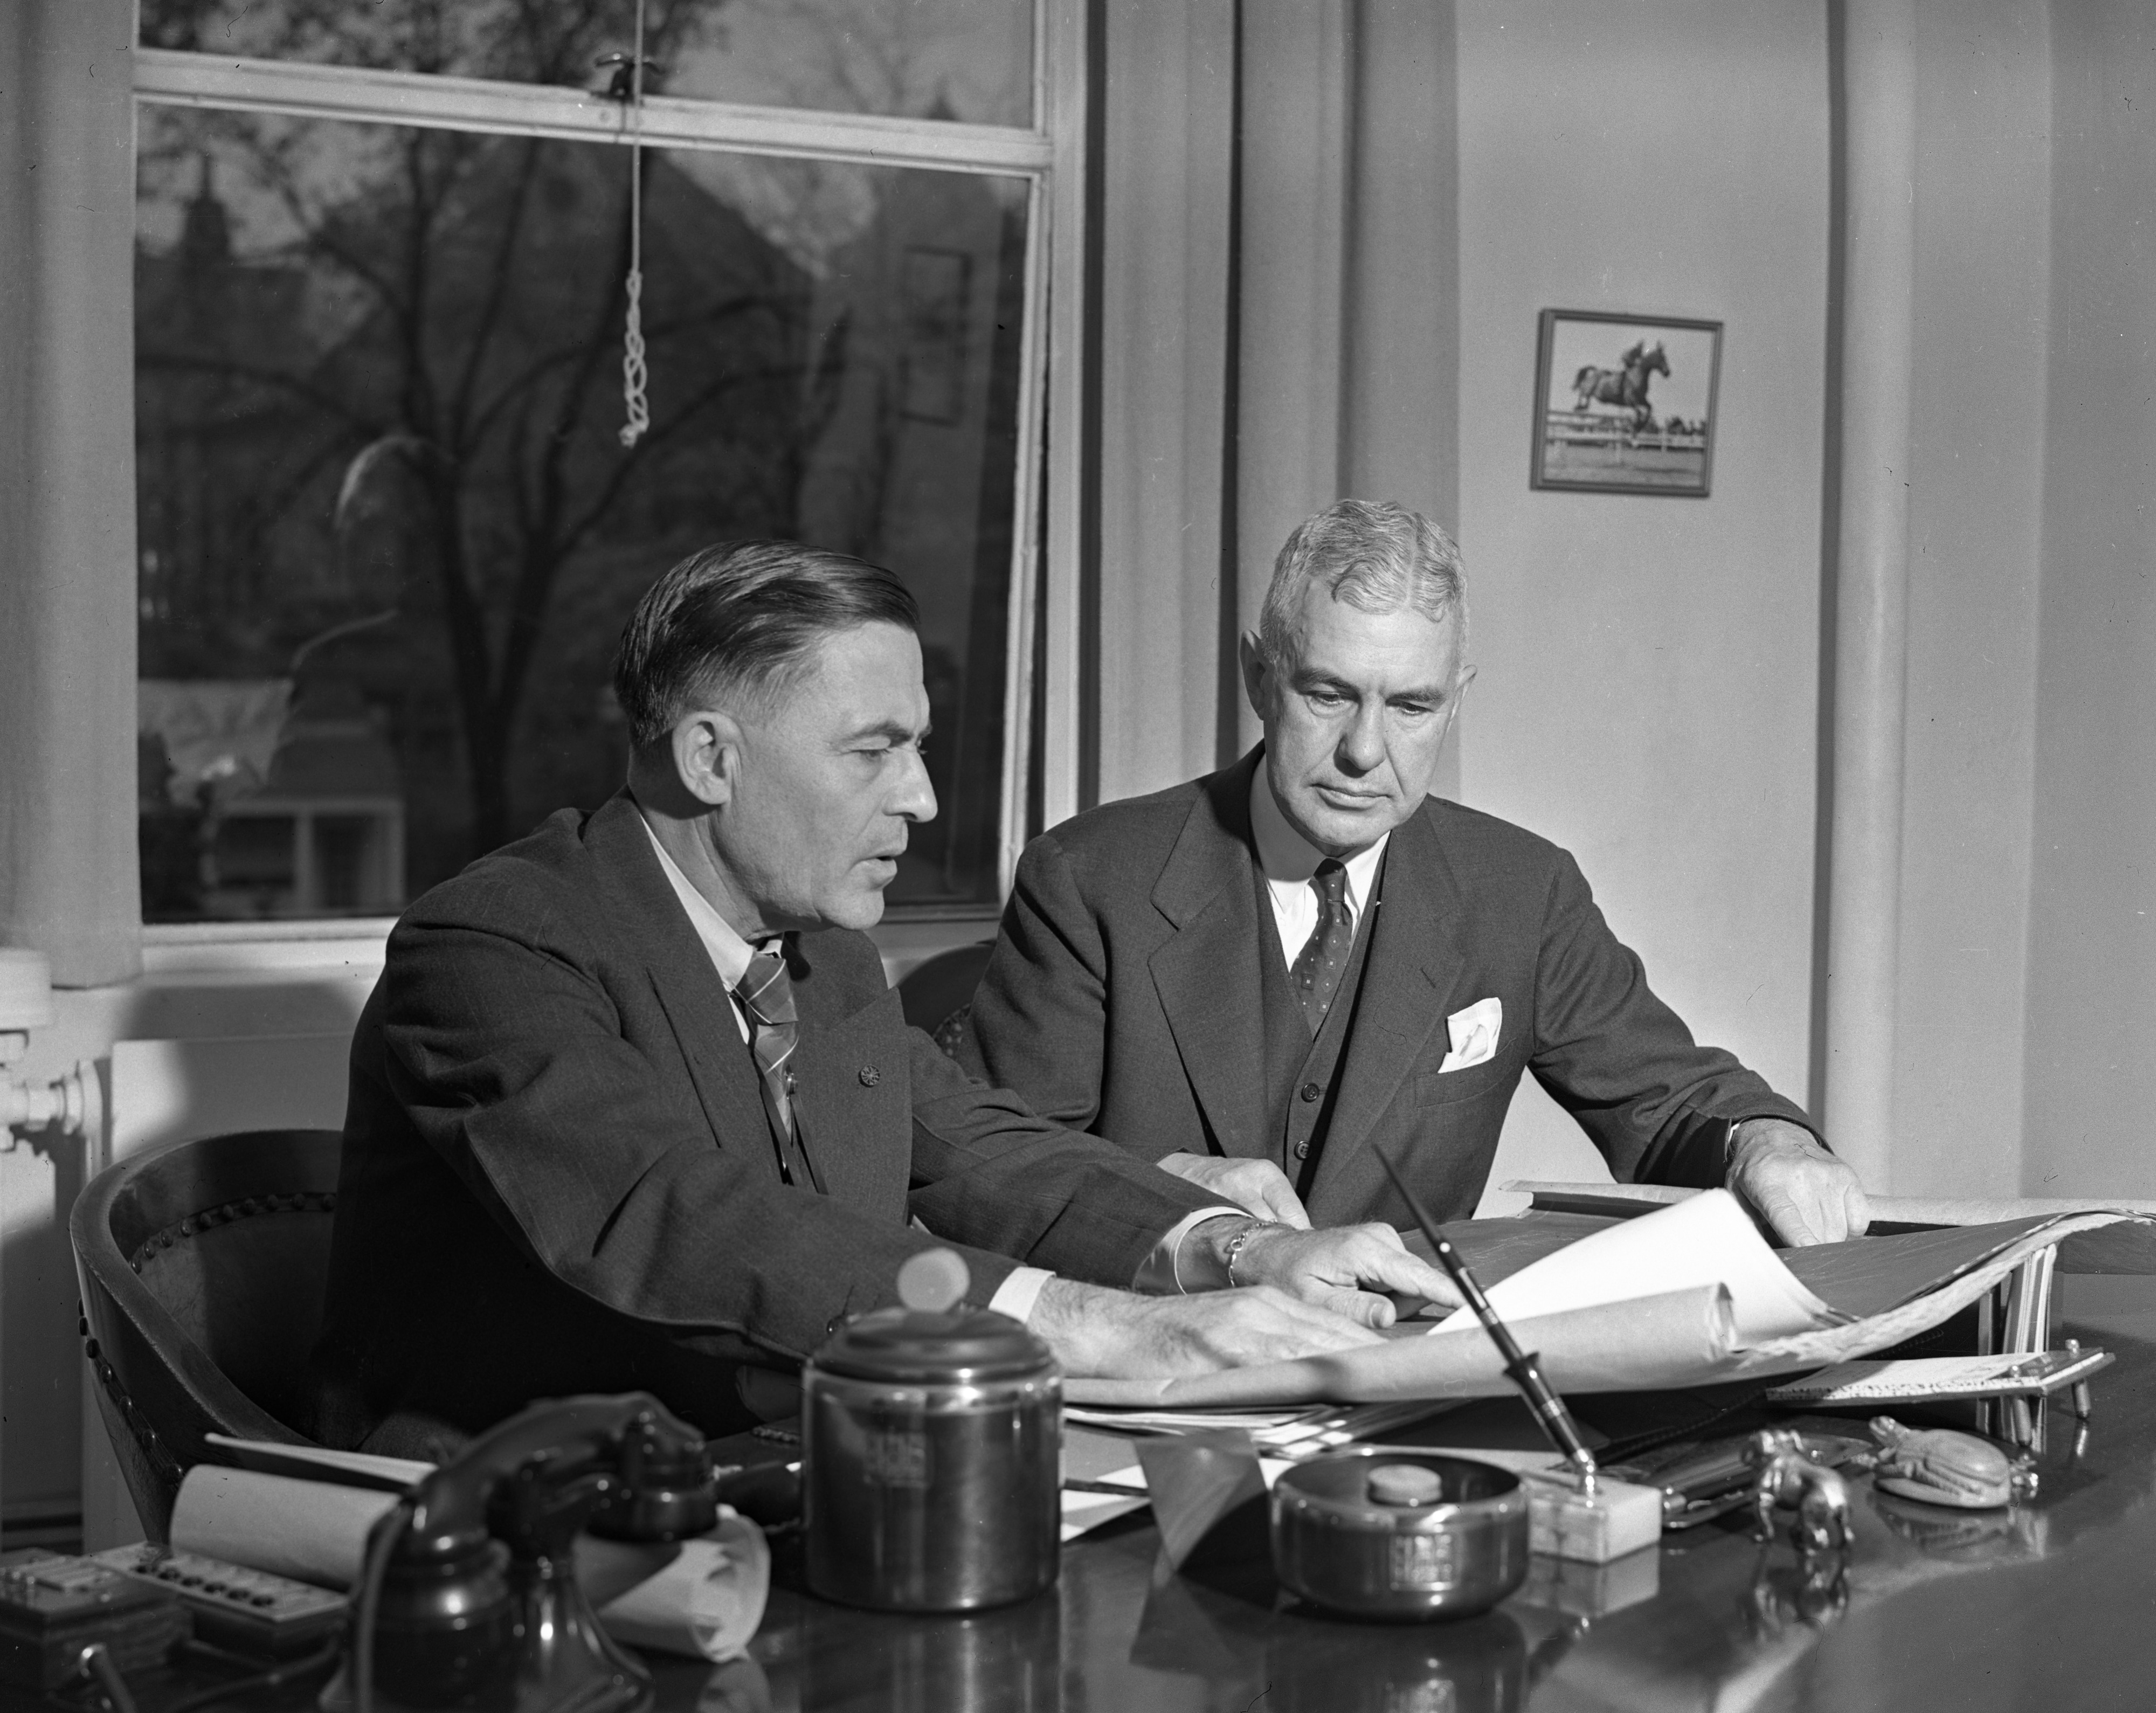 University of Michigan President Alexander G. Ruthven Meets With Prof. Lewis M. Gram, October 1939 image